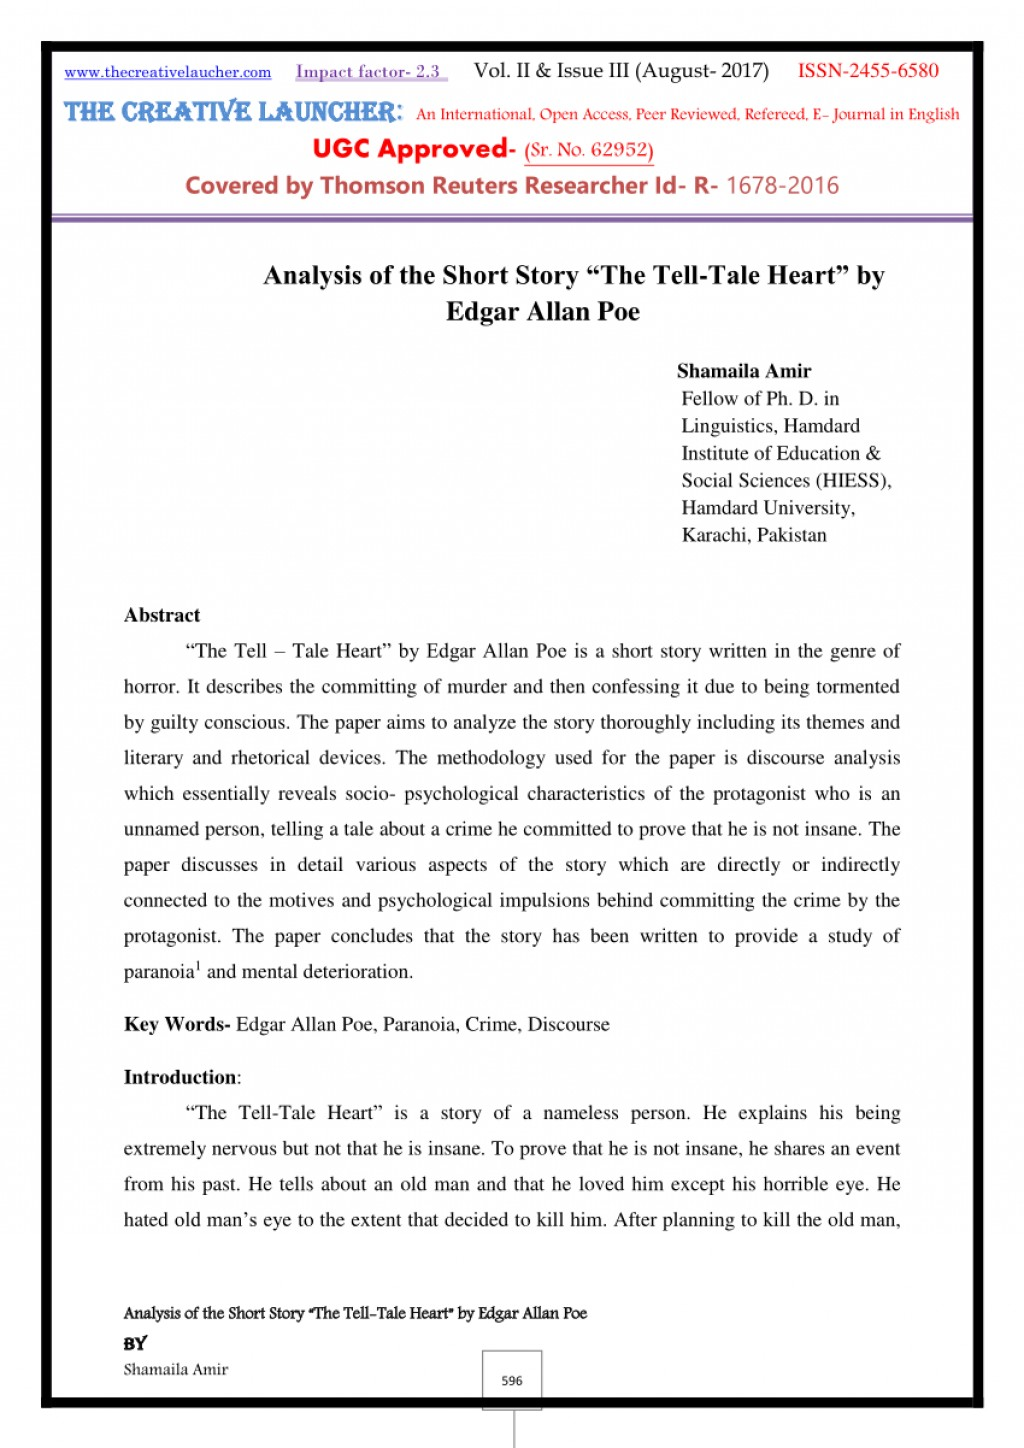 002 Essay Example The Tell Tale Heart Wonderful Questions And Answers Prompt Large